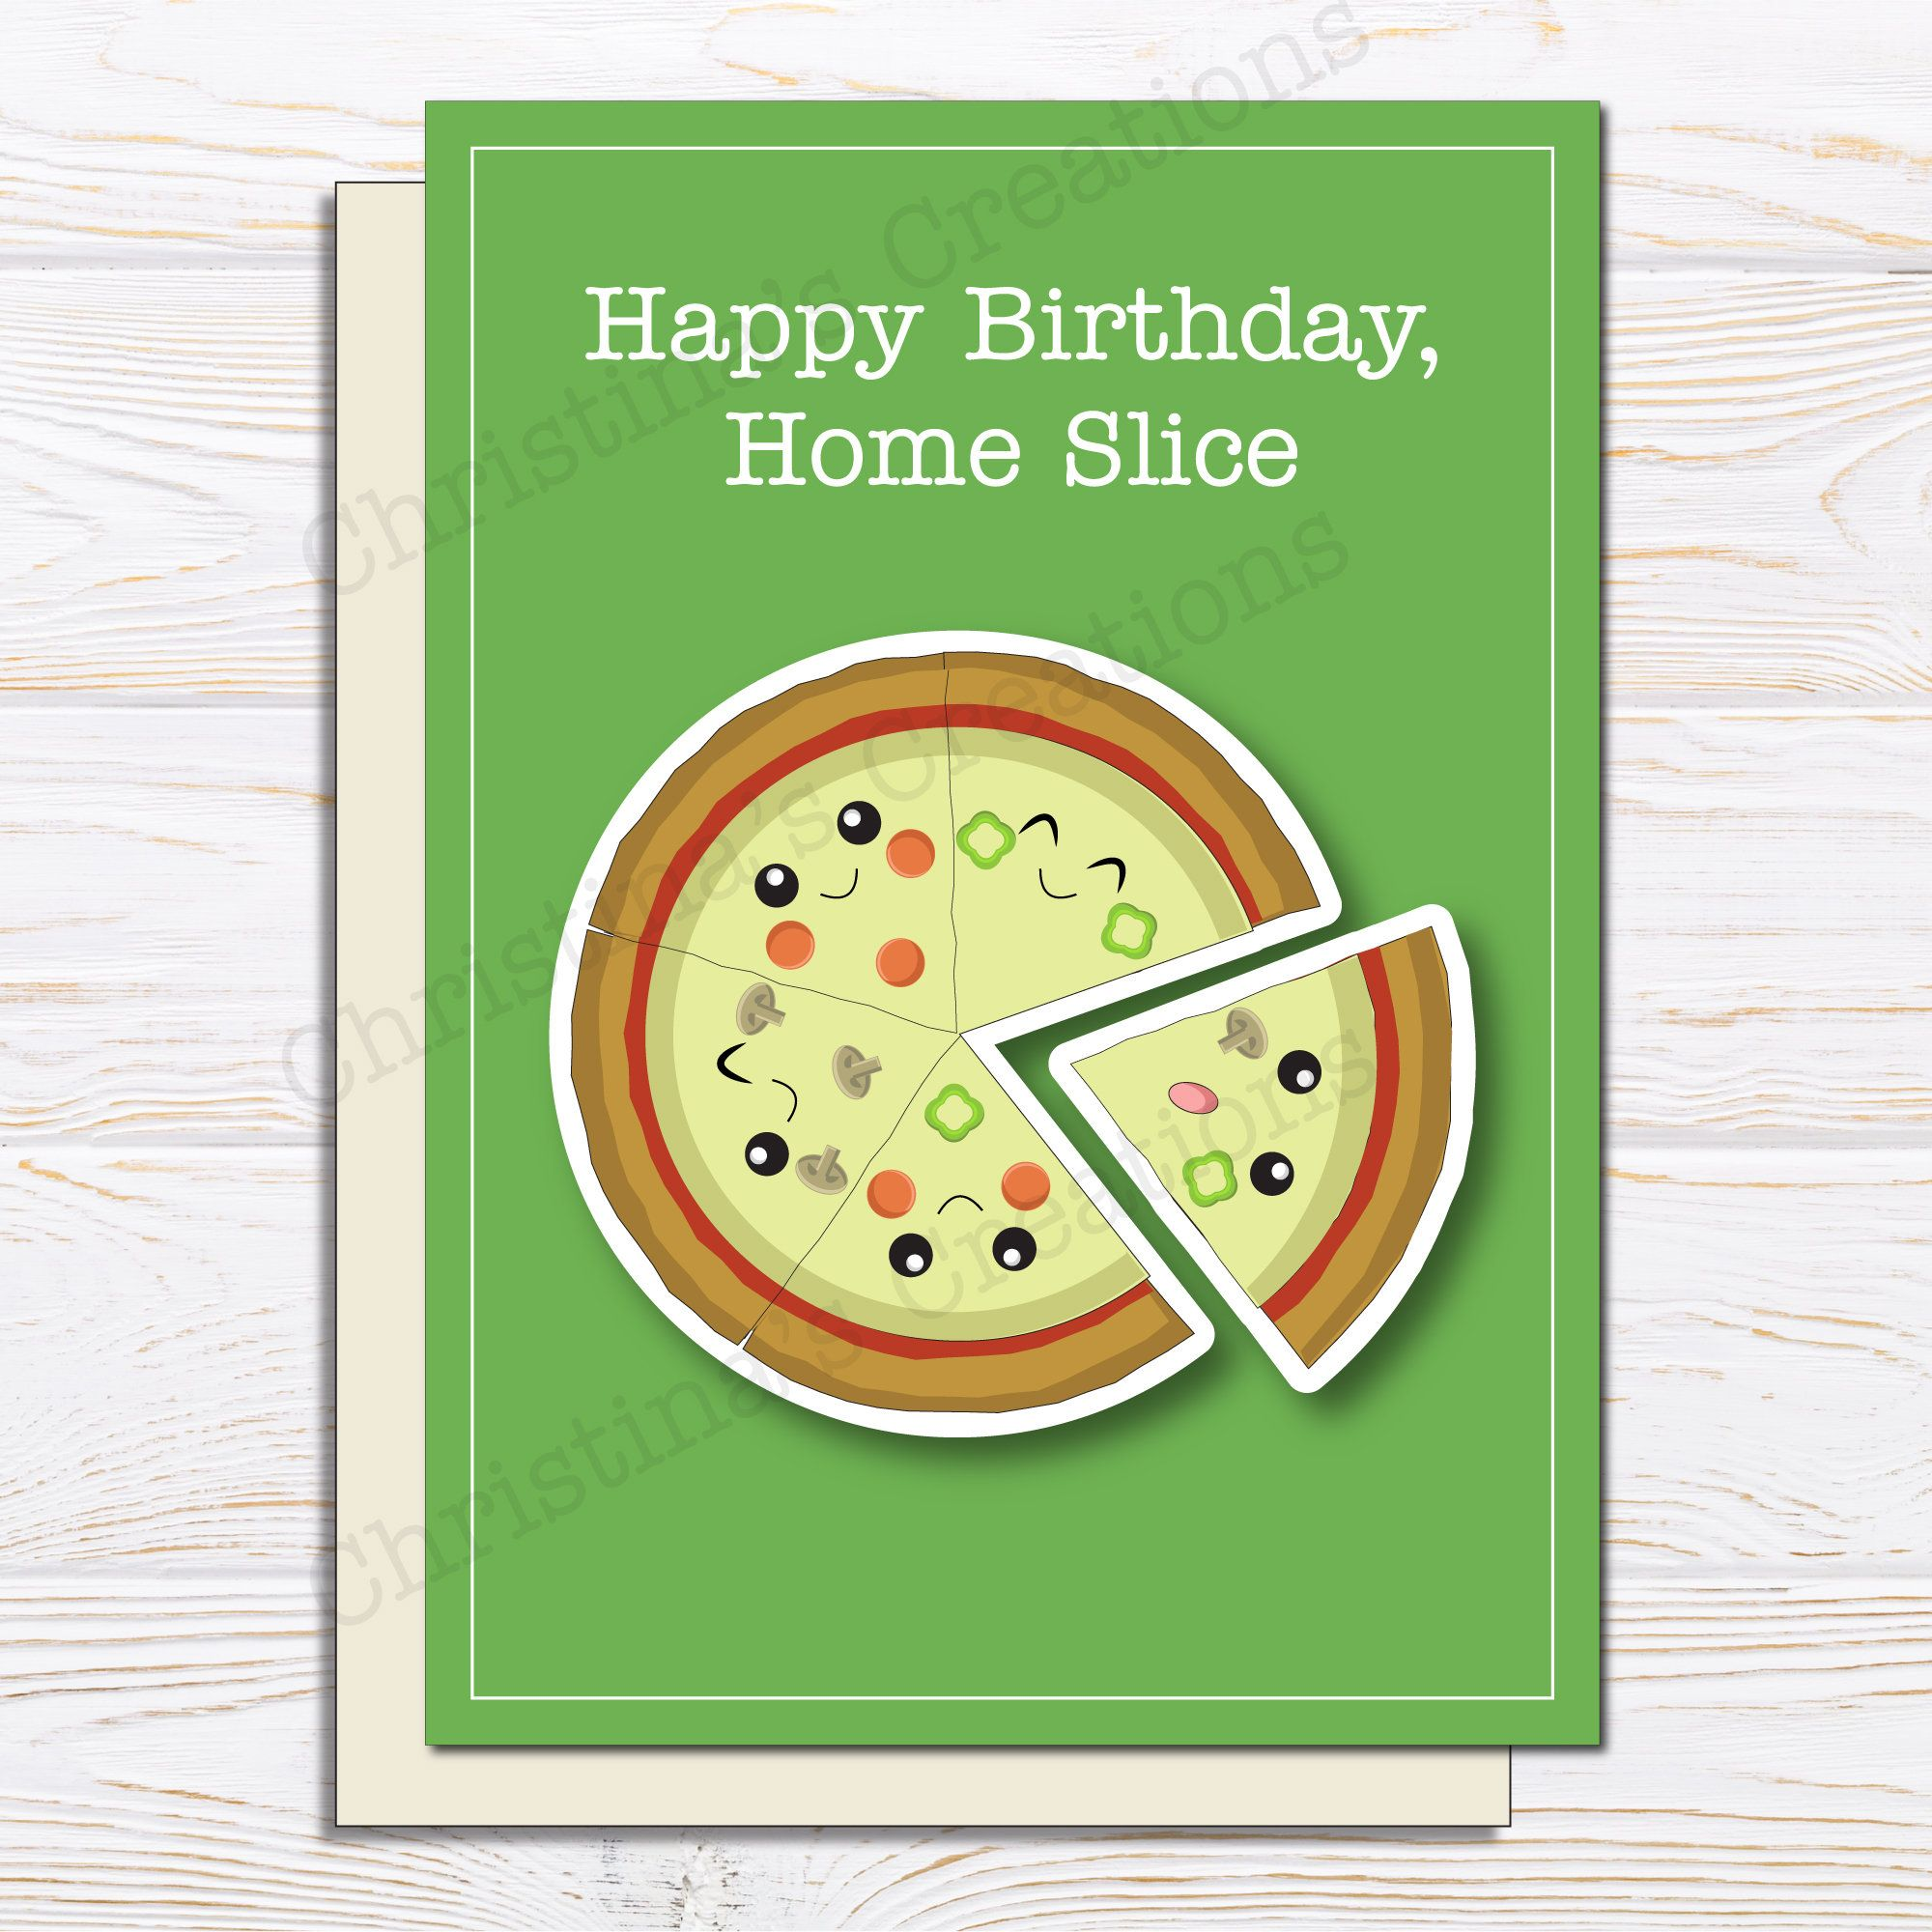 Cute pizza birthday card home slice for him best friend